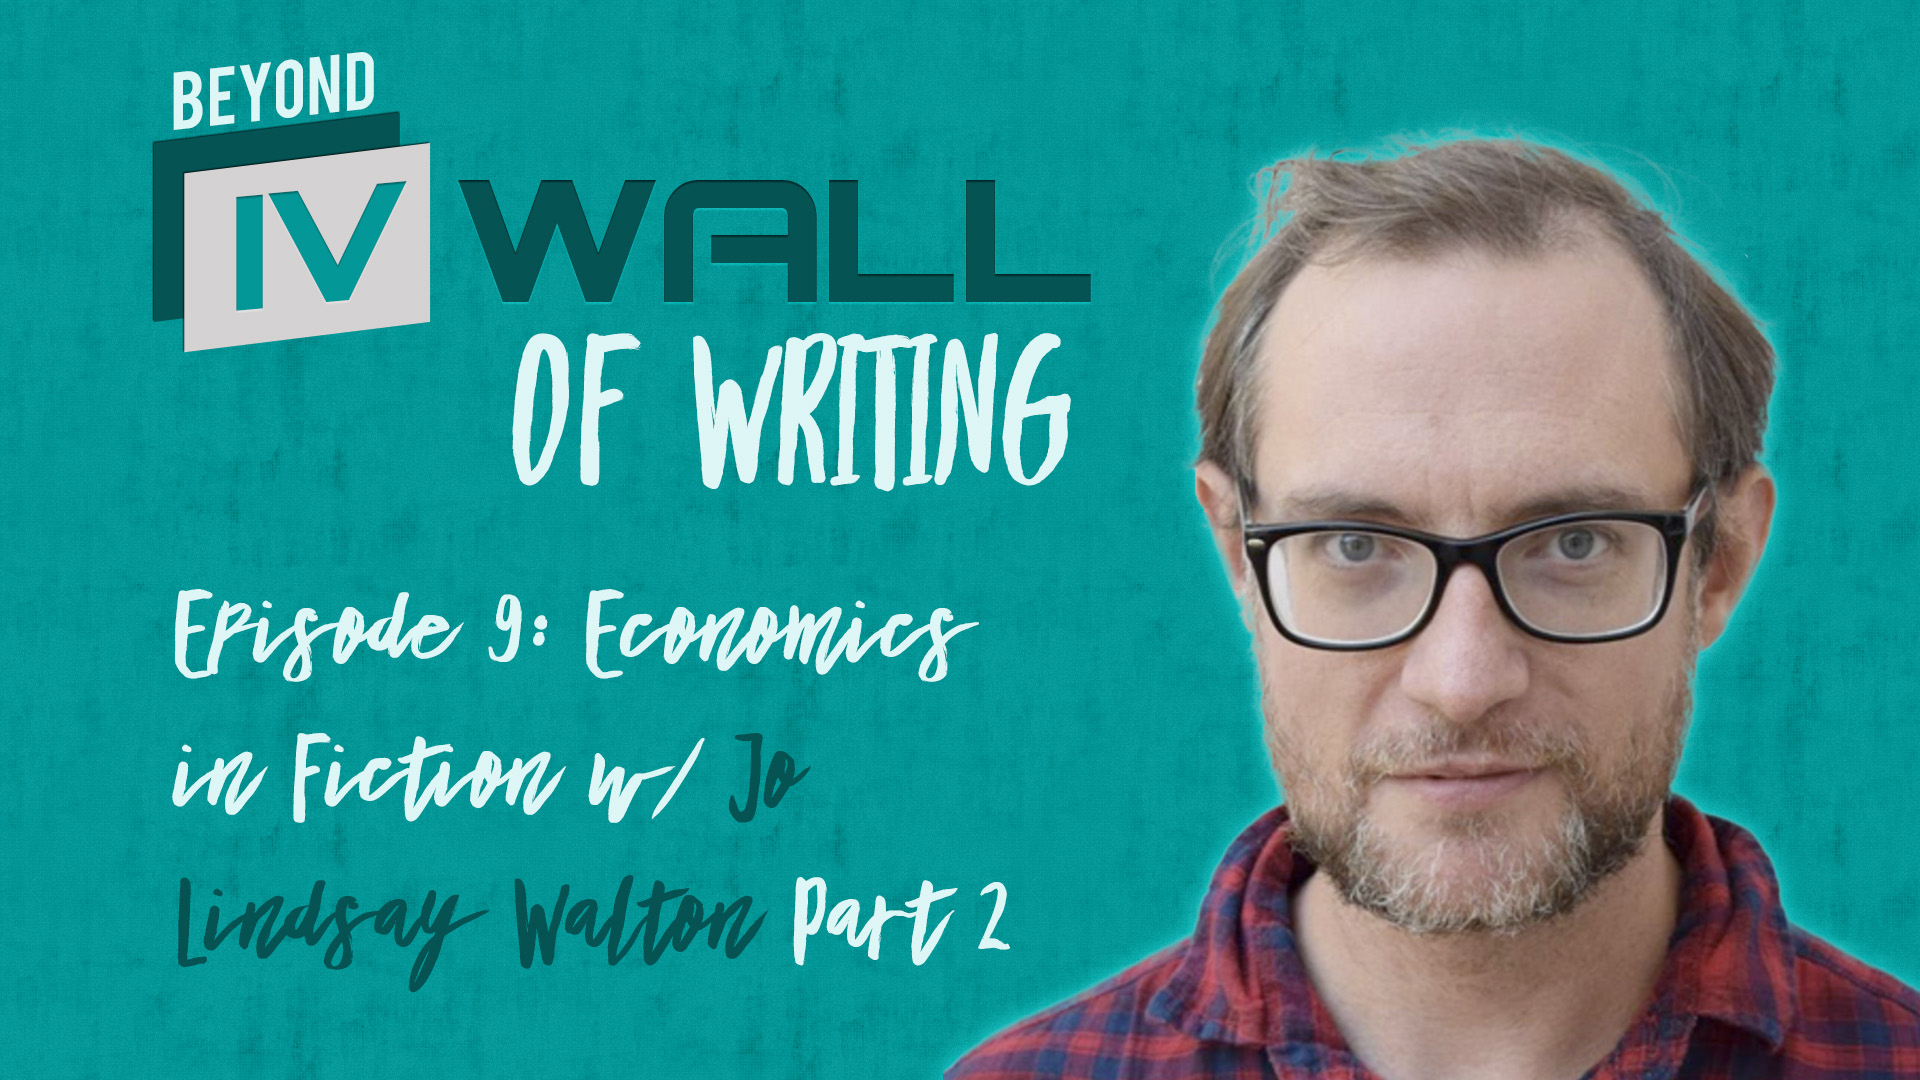 Beyond the IVWall of Writing: Episode 9- Economics in Fiction with Jo Lindsay Walton Part 2